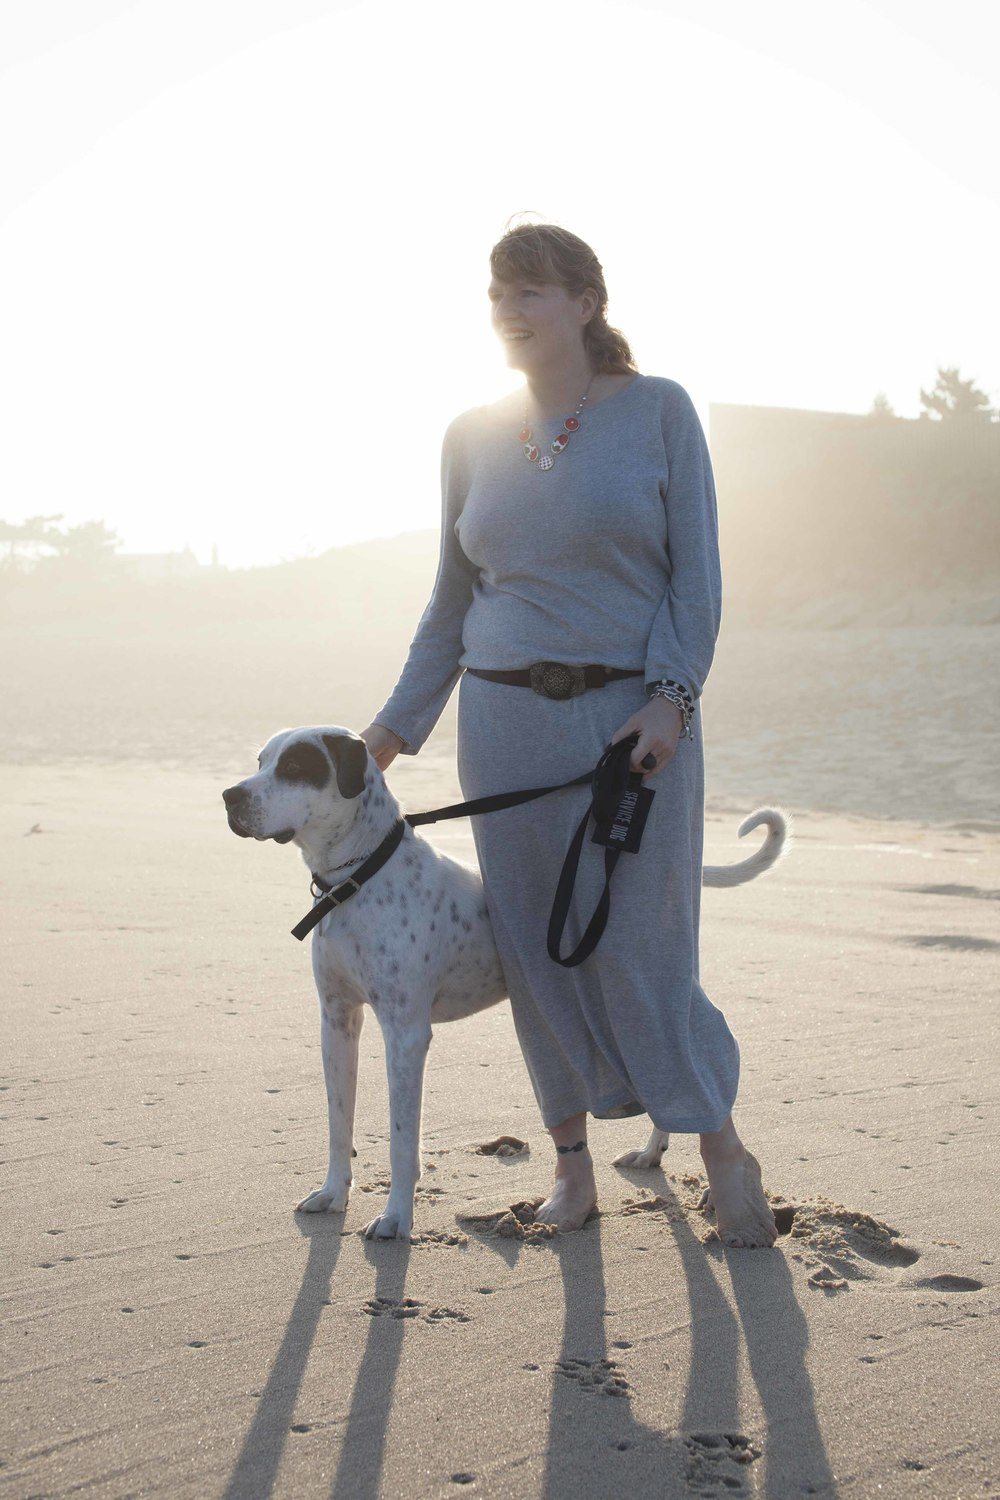 The owner, Jenny Ljungberg, on the beach with her rescue dog Gatsby who came to her from Texas Best Chance Animal Rescue. Photo by Anna Schori.